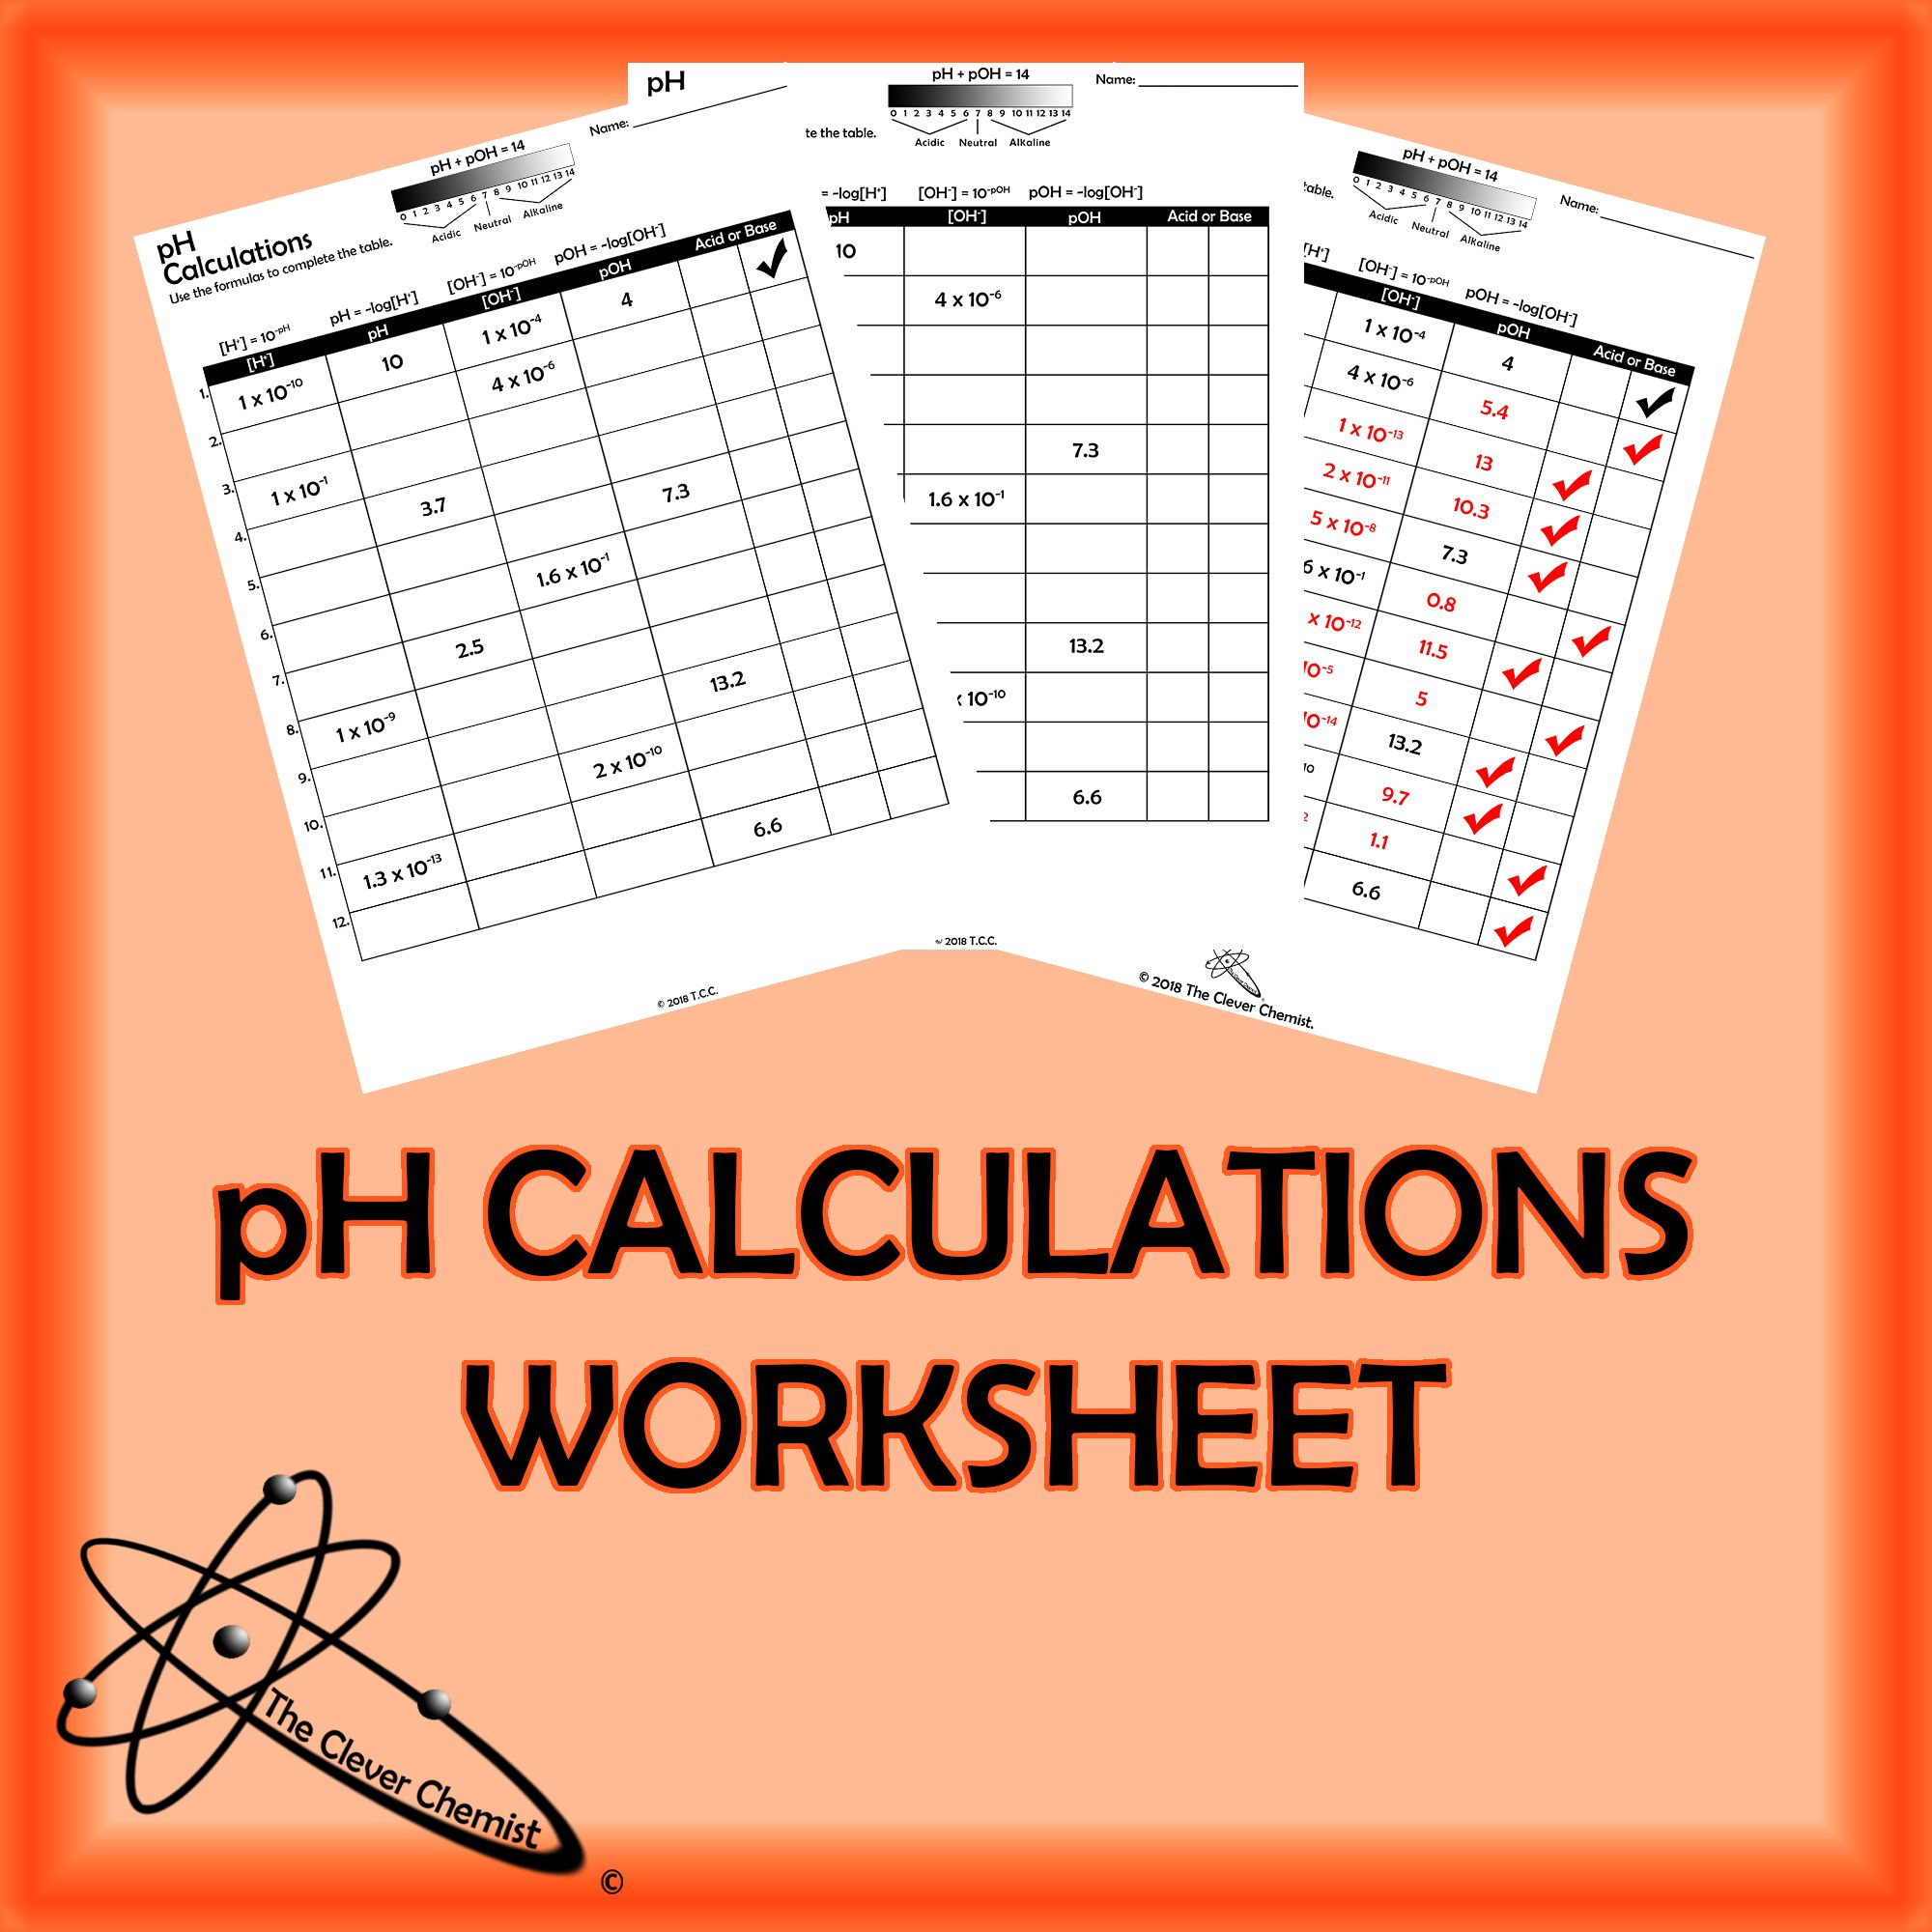 pH Calculation Worksheet | Worksheets, Physical science and Students